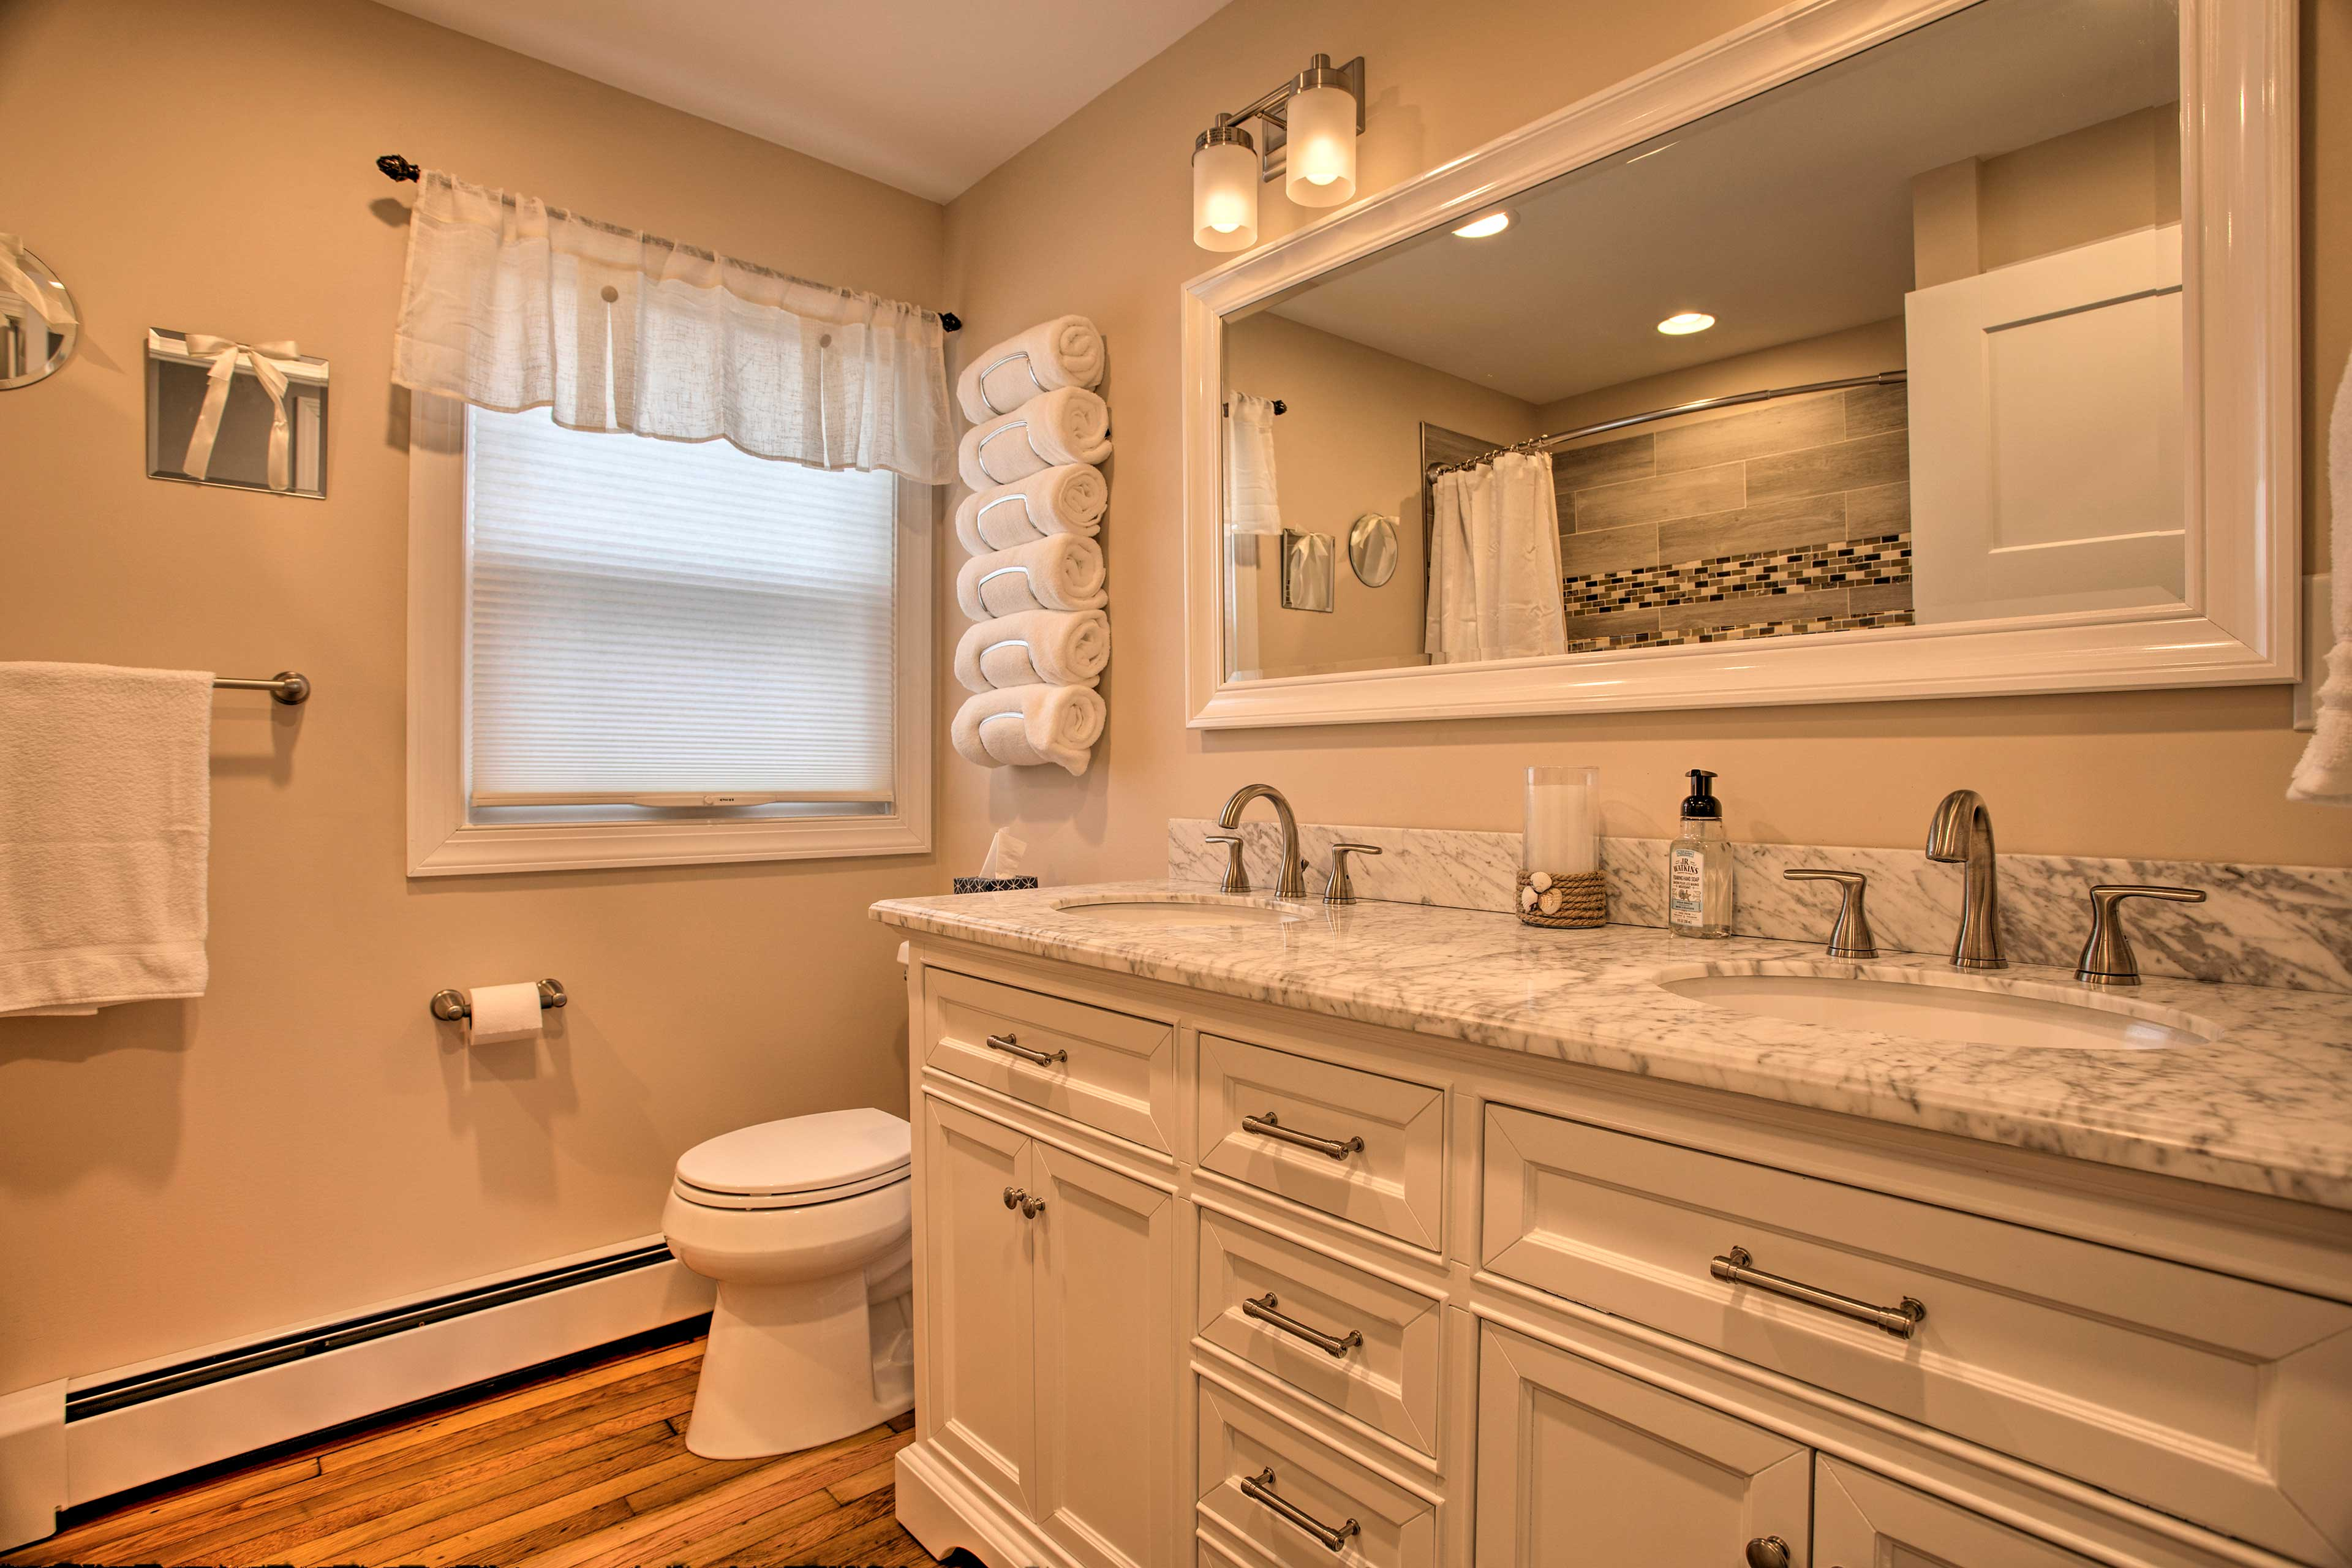 The master bathroom features Jack-and-Jill sinks and a shower/tub combo.